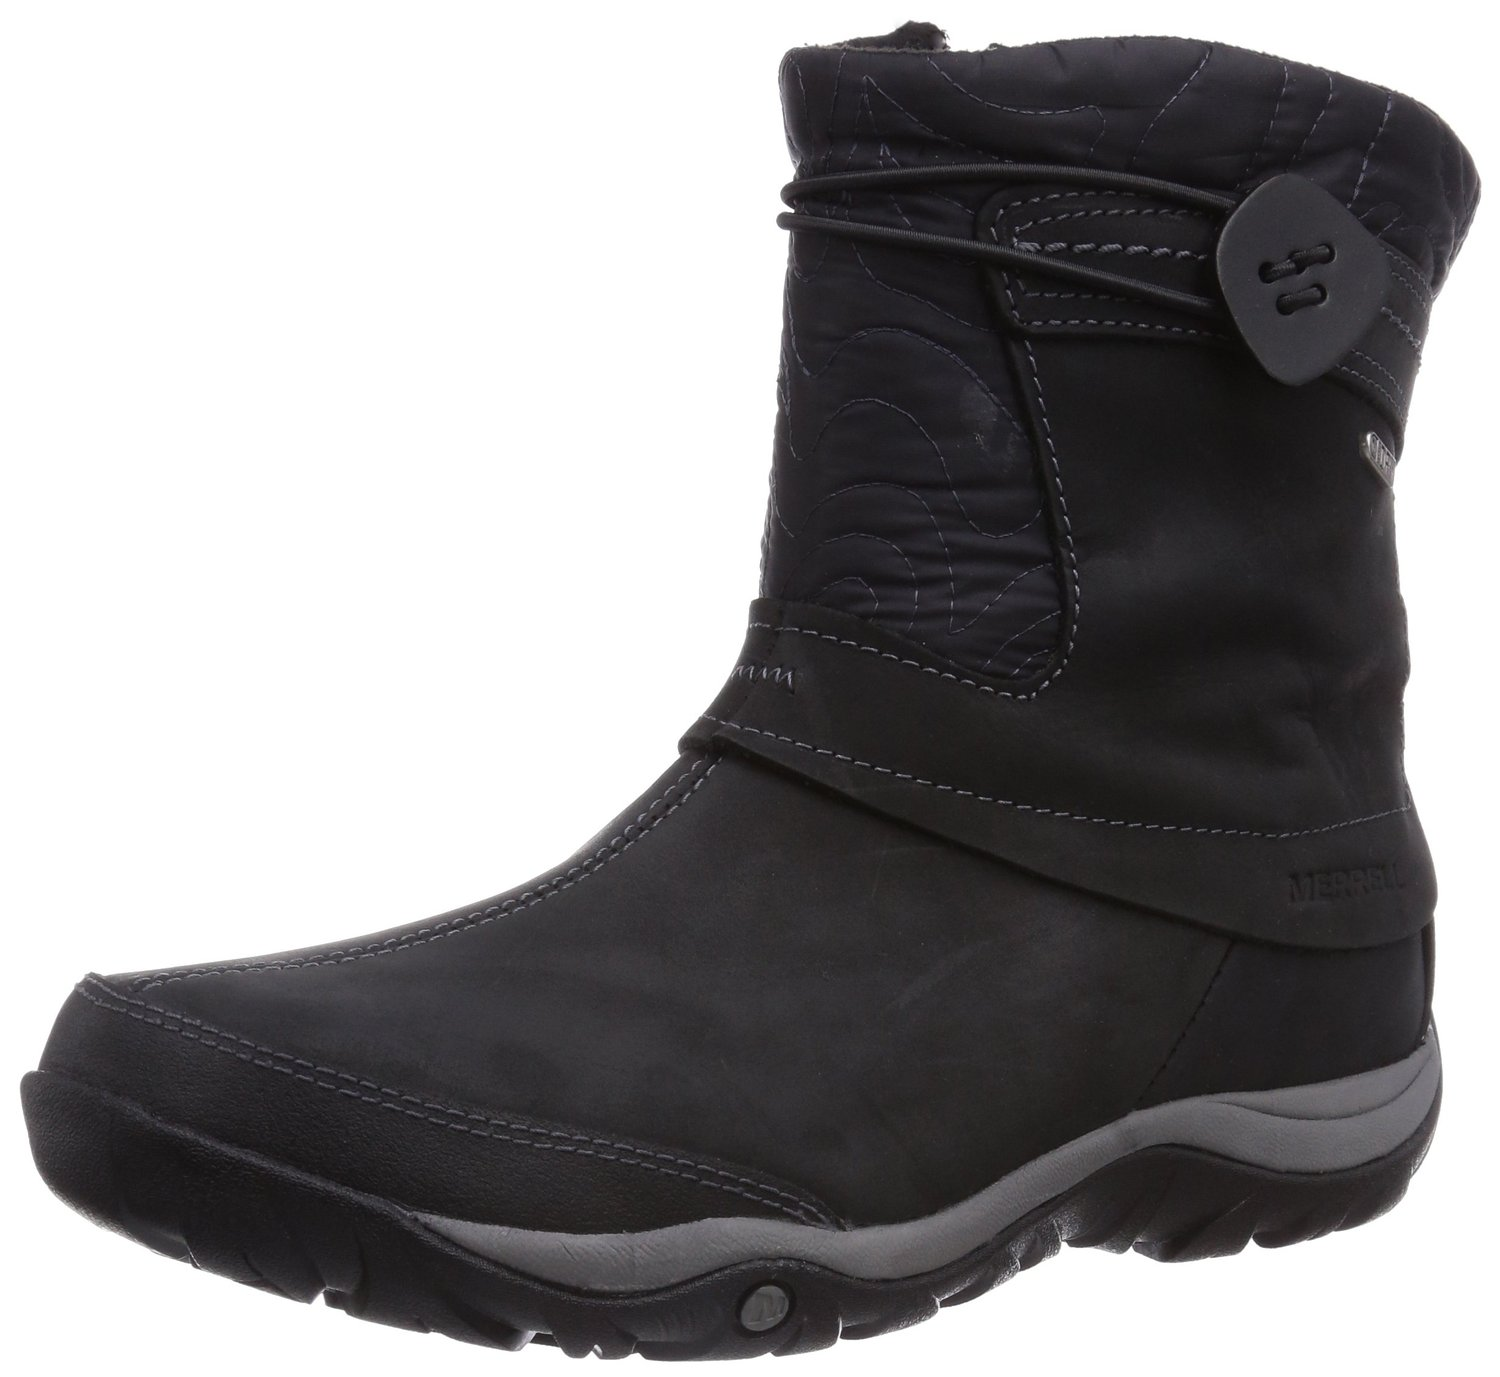 Merrell Dewbrook Zip Waterproof Winter Boot